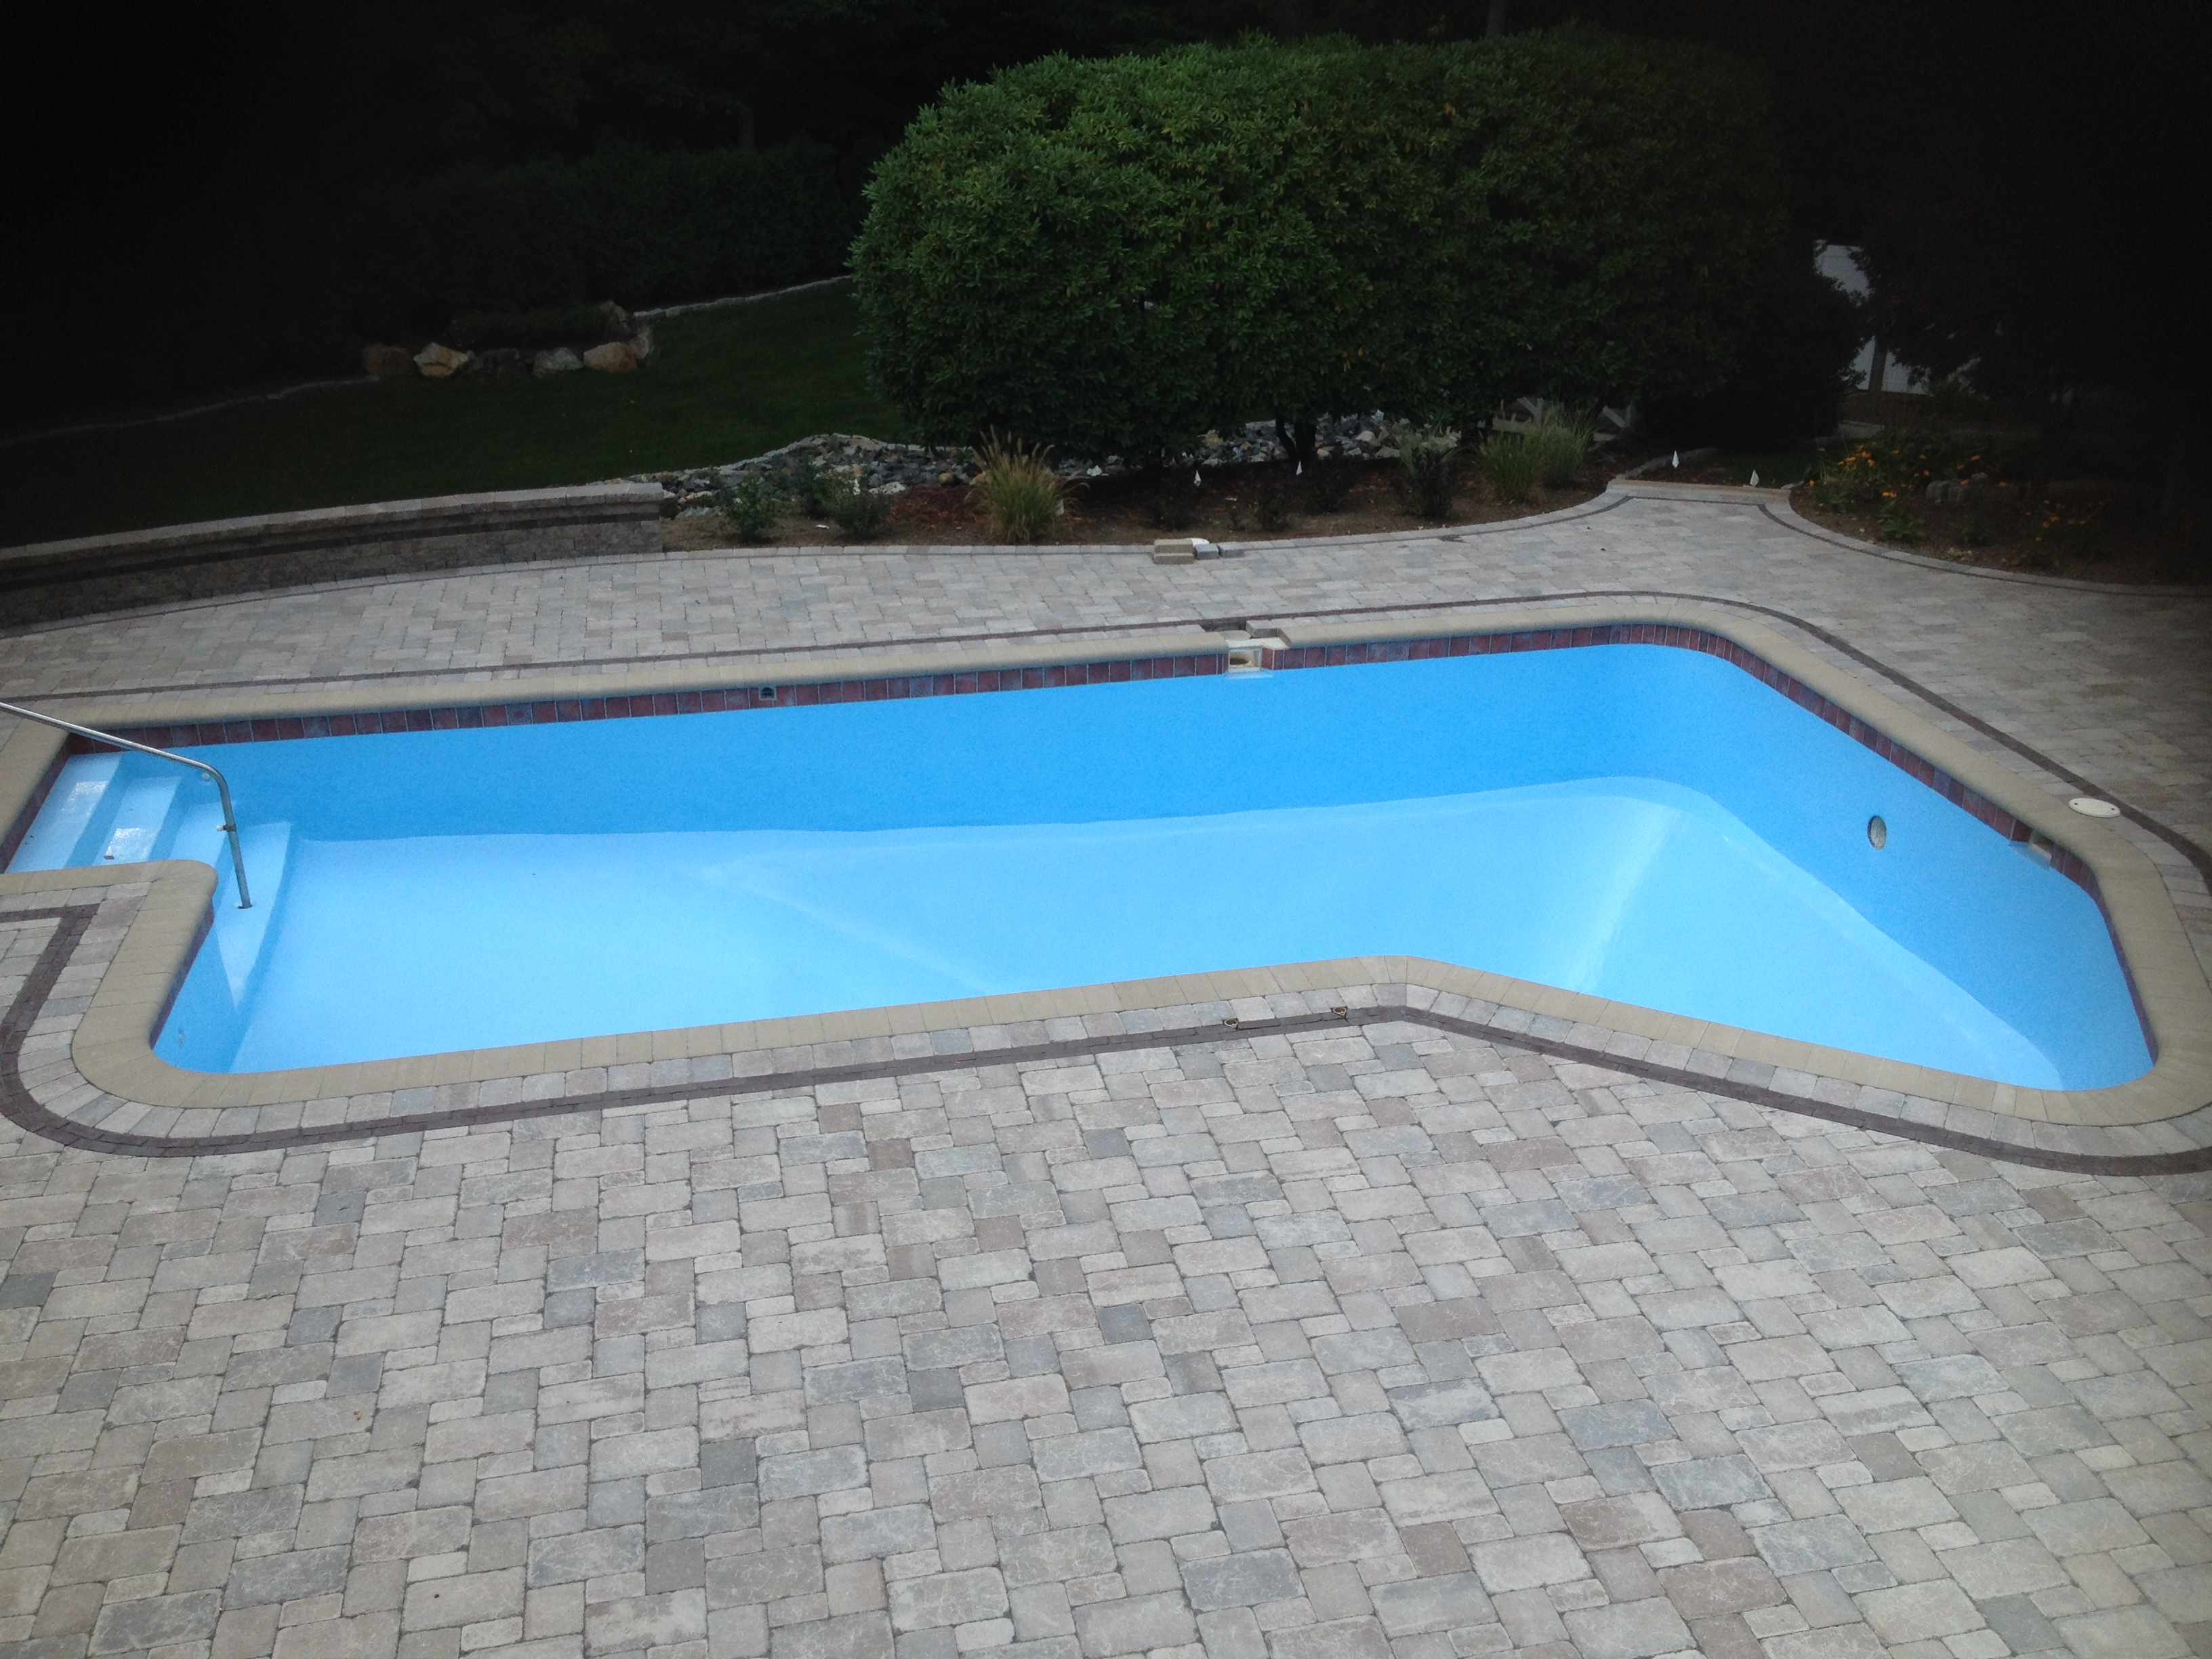 Inground swimming pool tile & paint